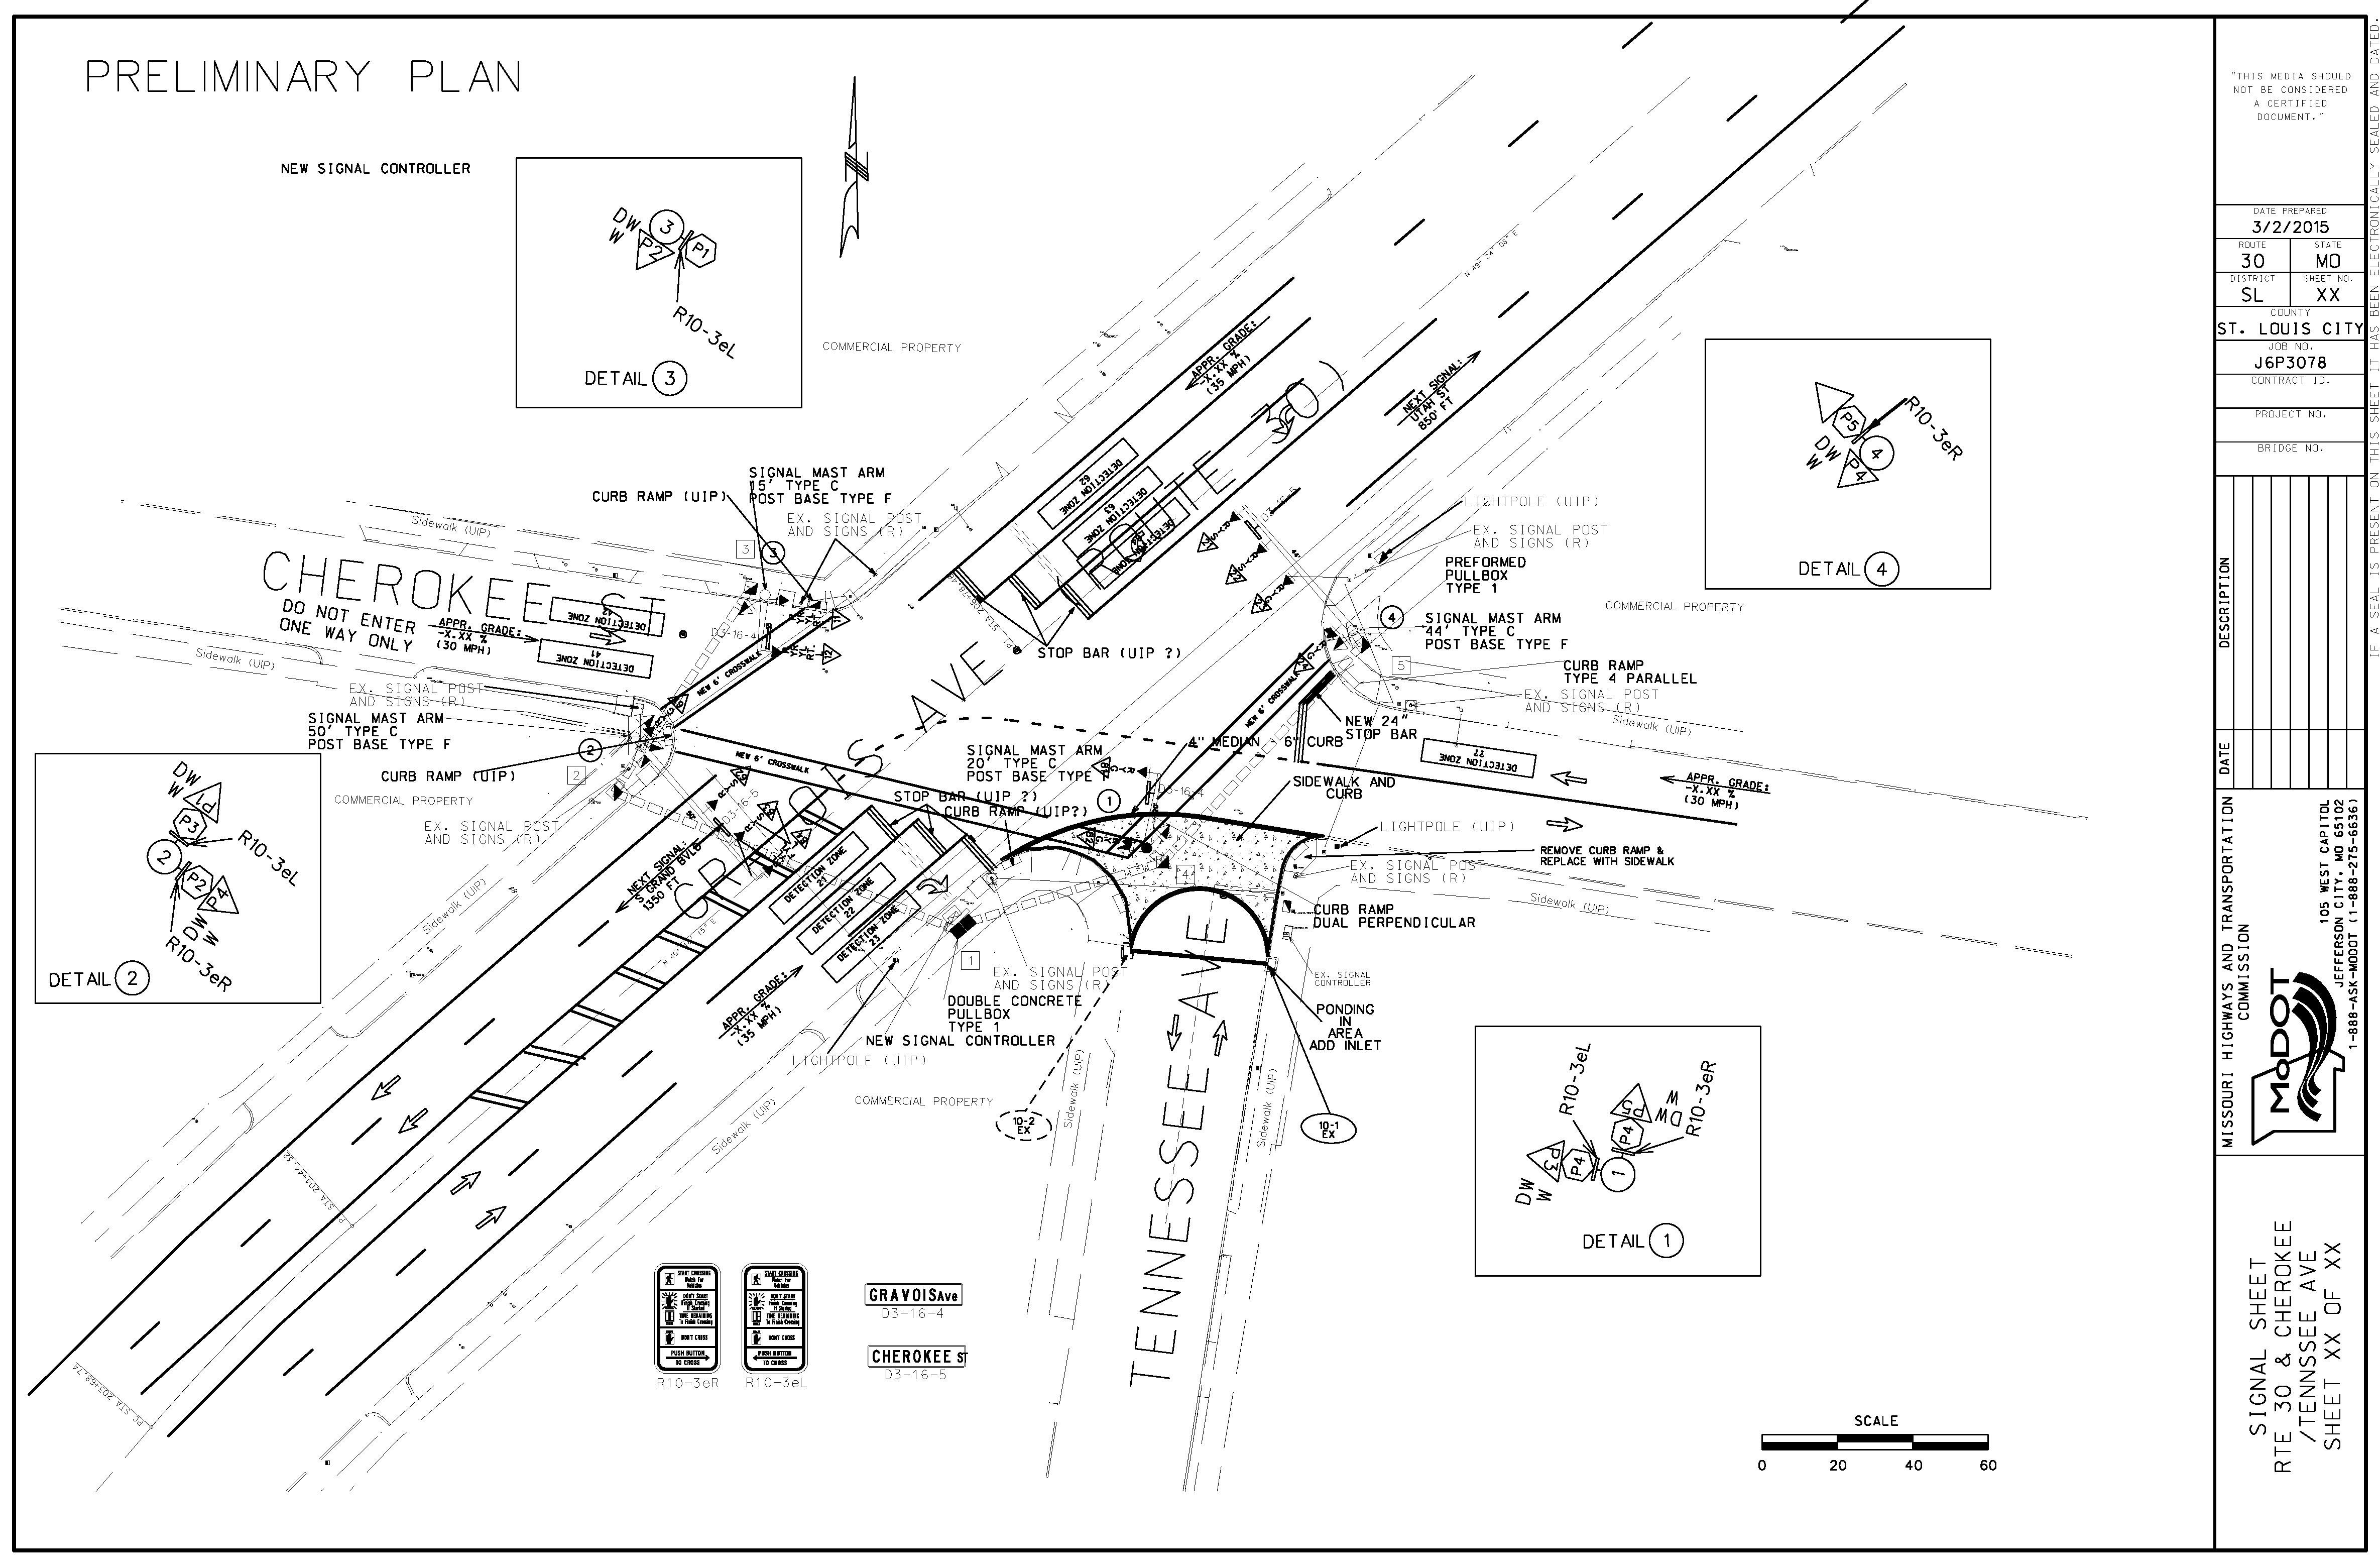 Gravois Avenue closures proposed - St. Louis, MO